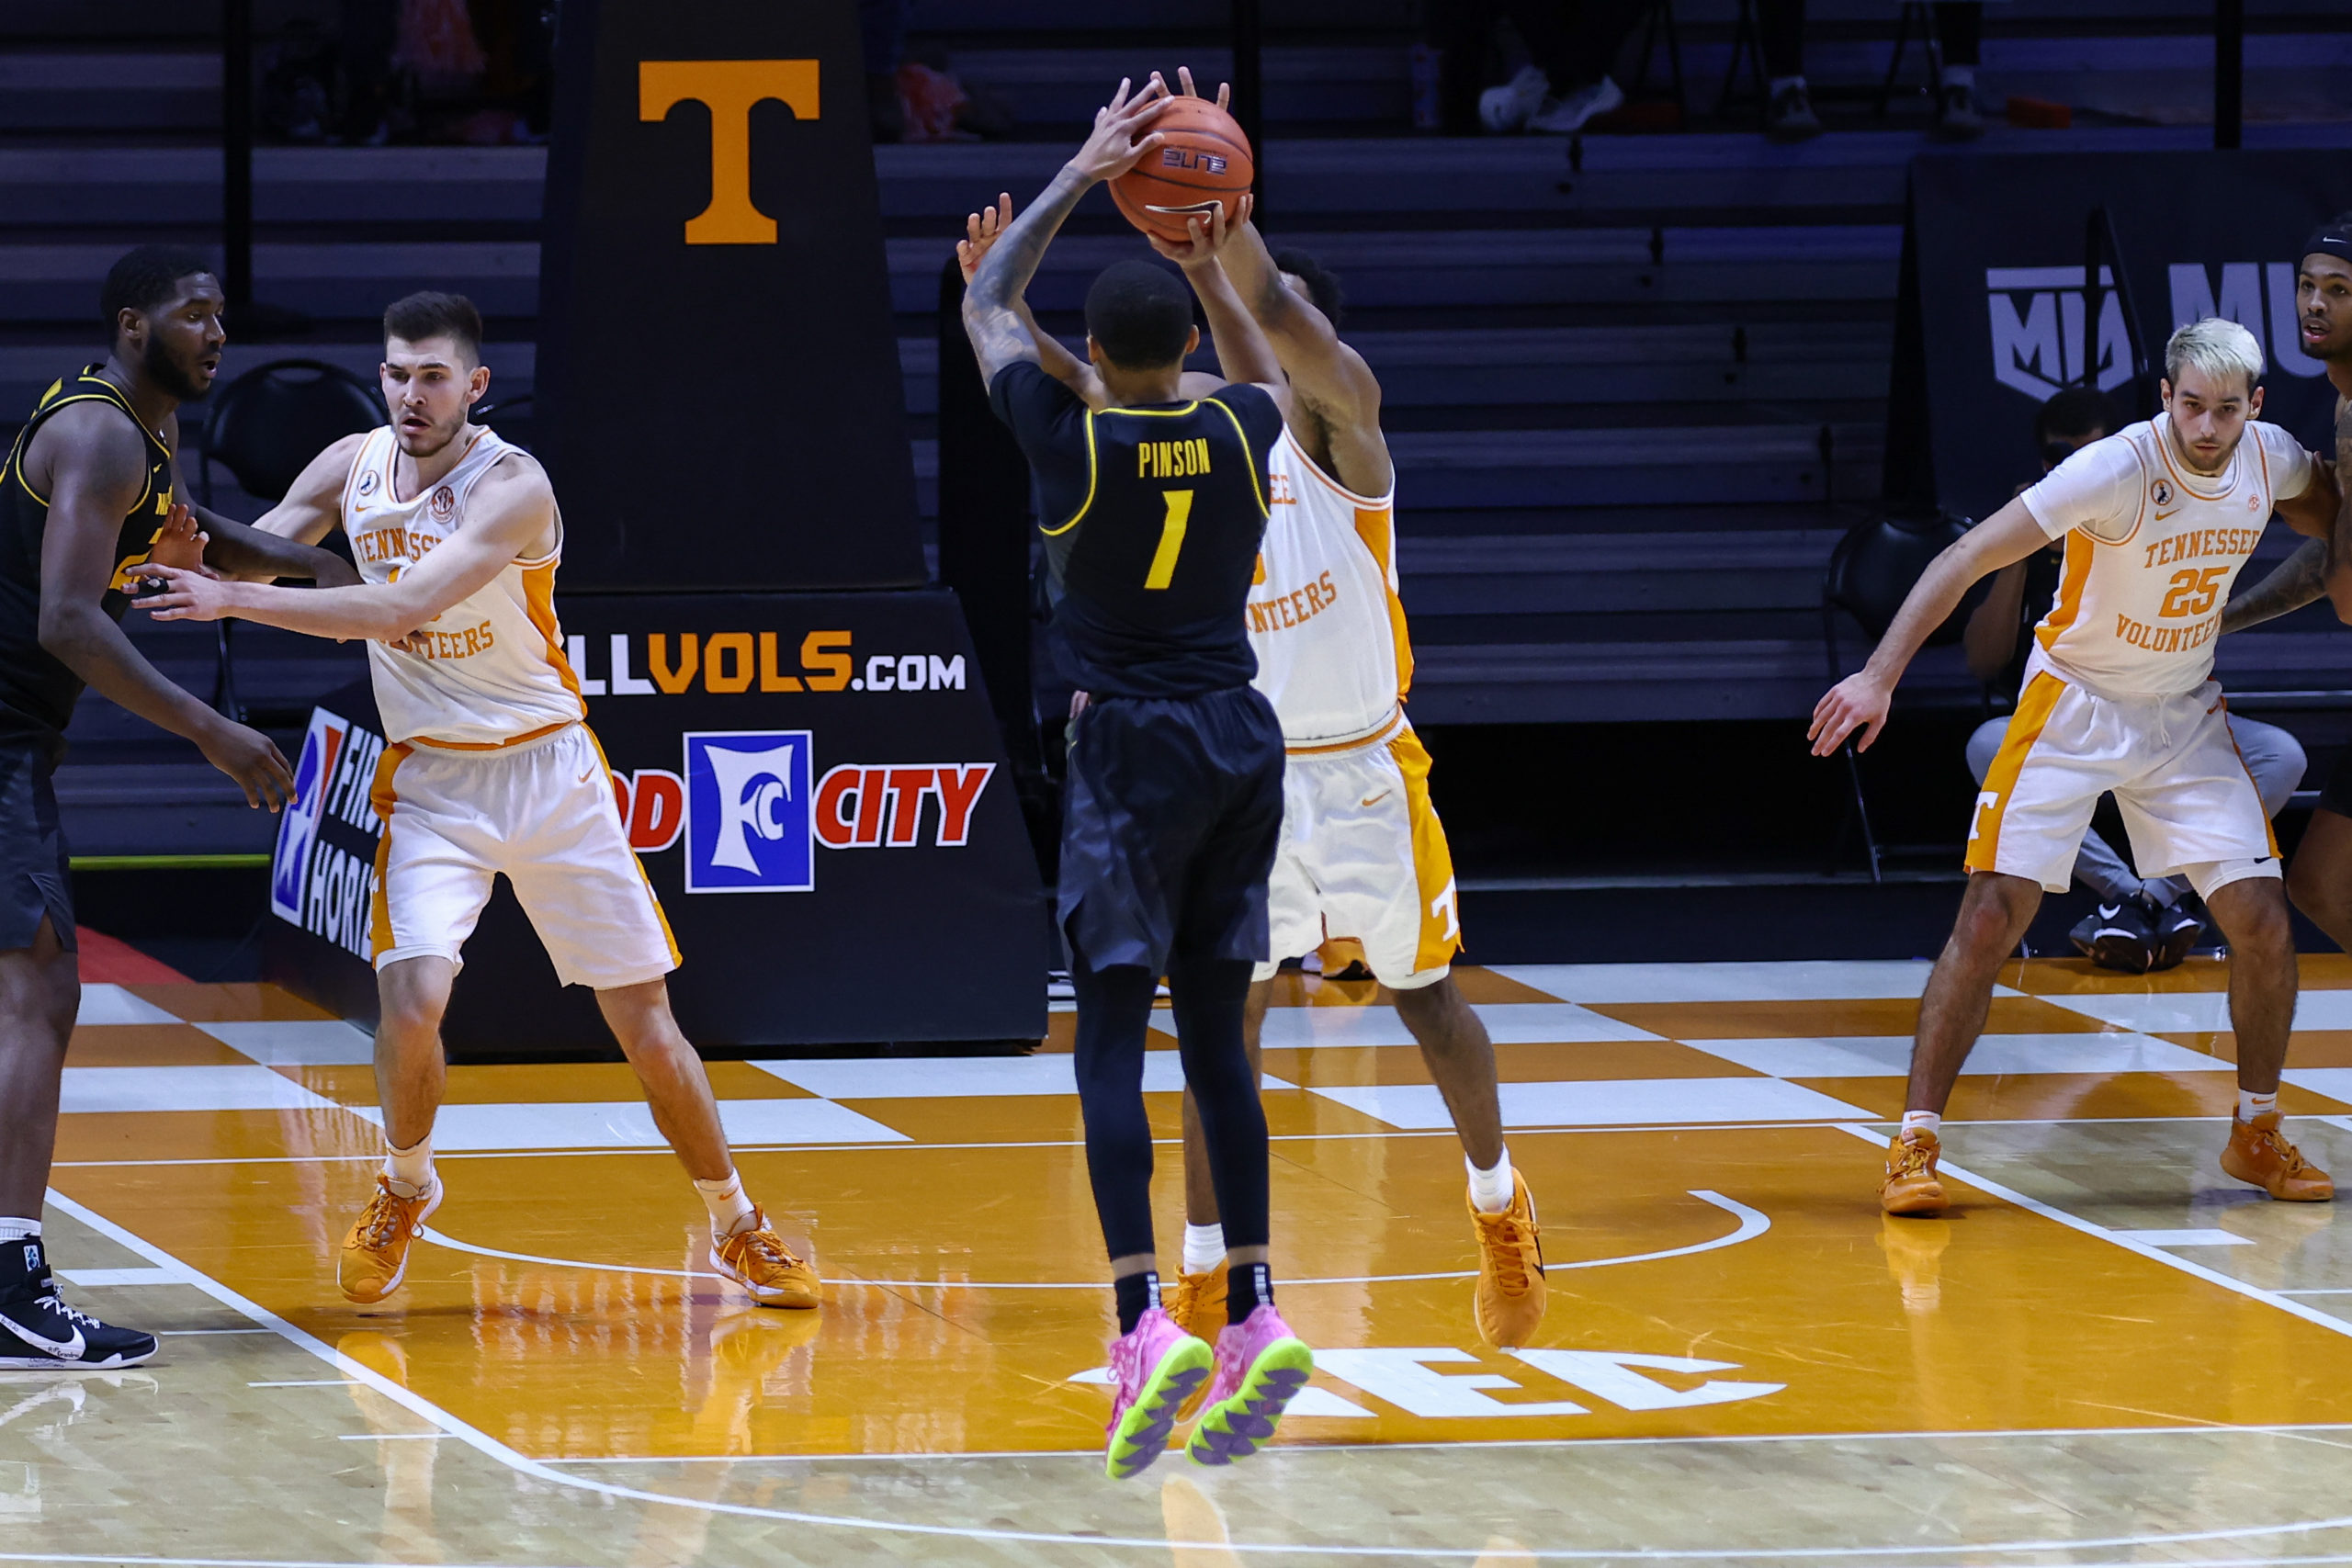 Pinson helps deliver big win for Mizzou at Tennessee – Missourinet